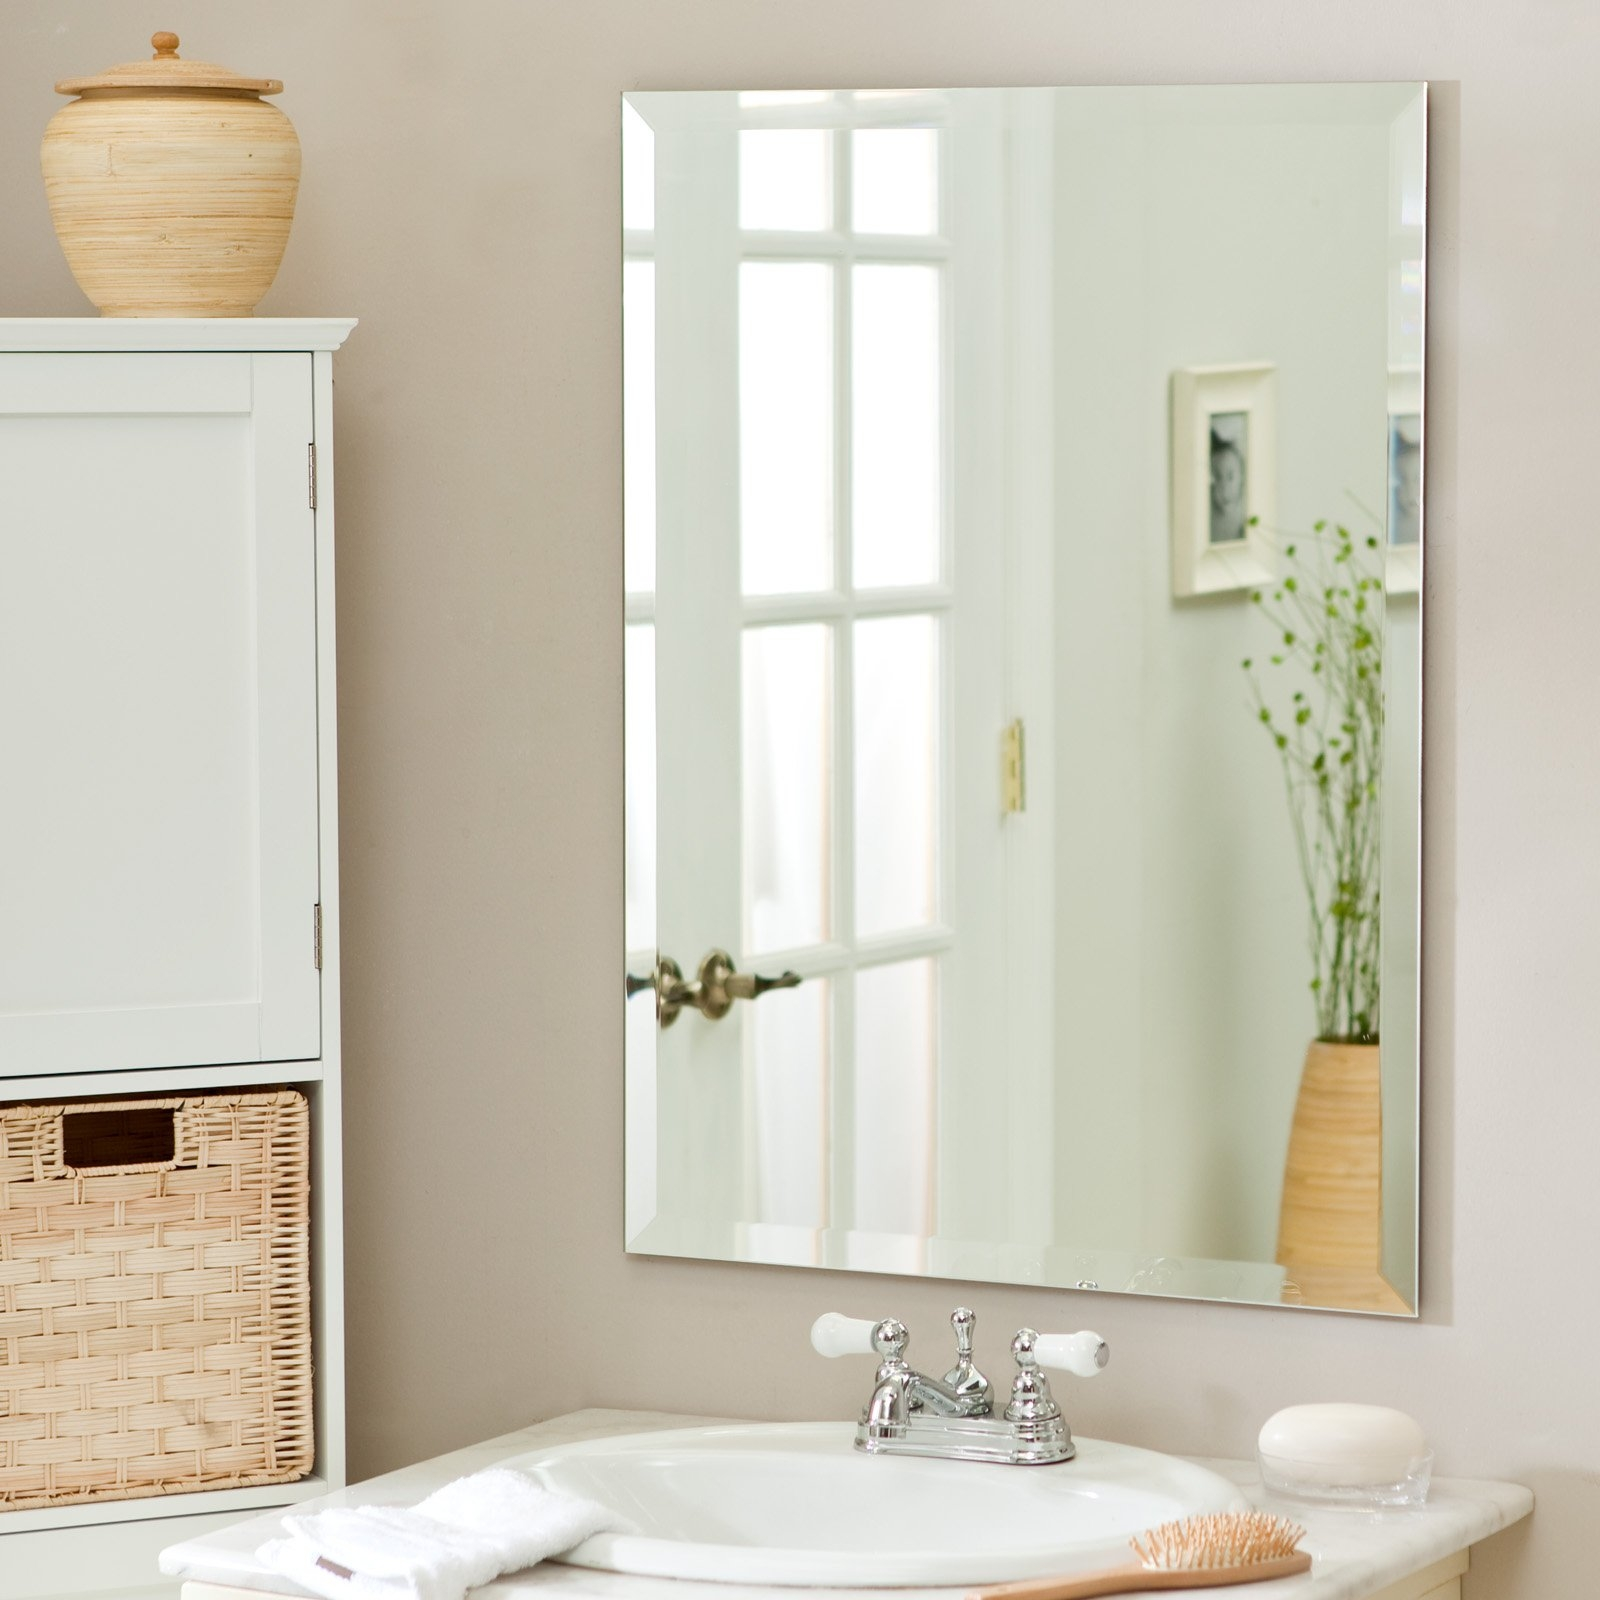 Install Large Frameless Bathroom Mirror Creative Bathroom Decoration Inside Frameless Large Mirror (Image 6 of 15)